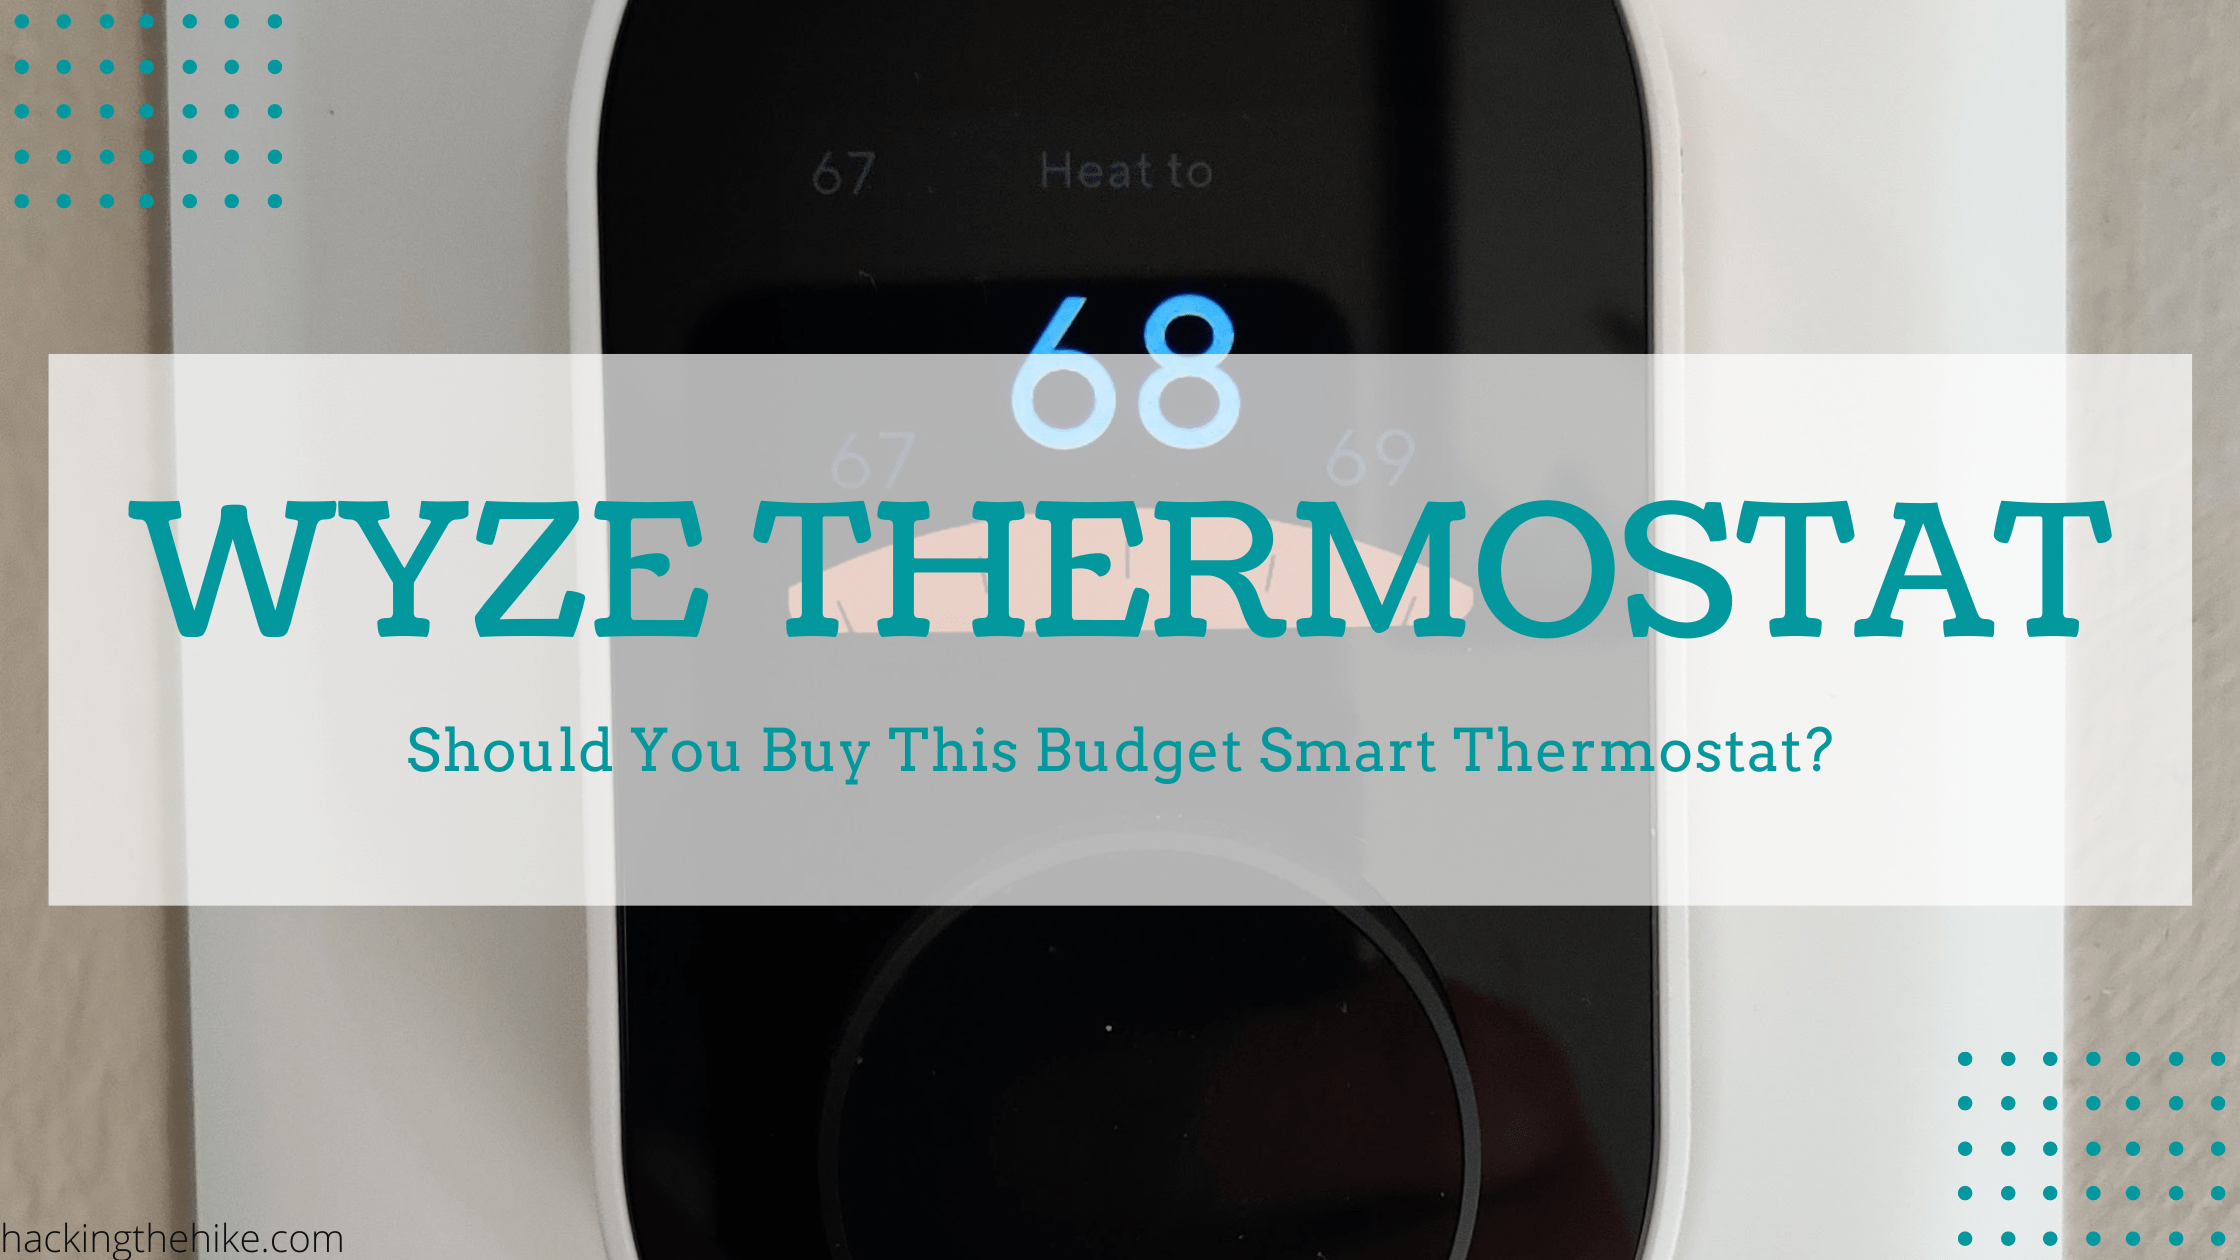 Should you by the Wyze Thermostat?